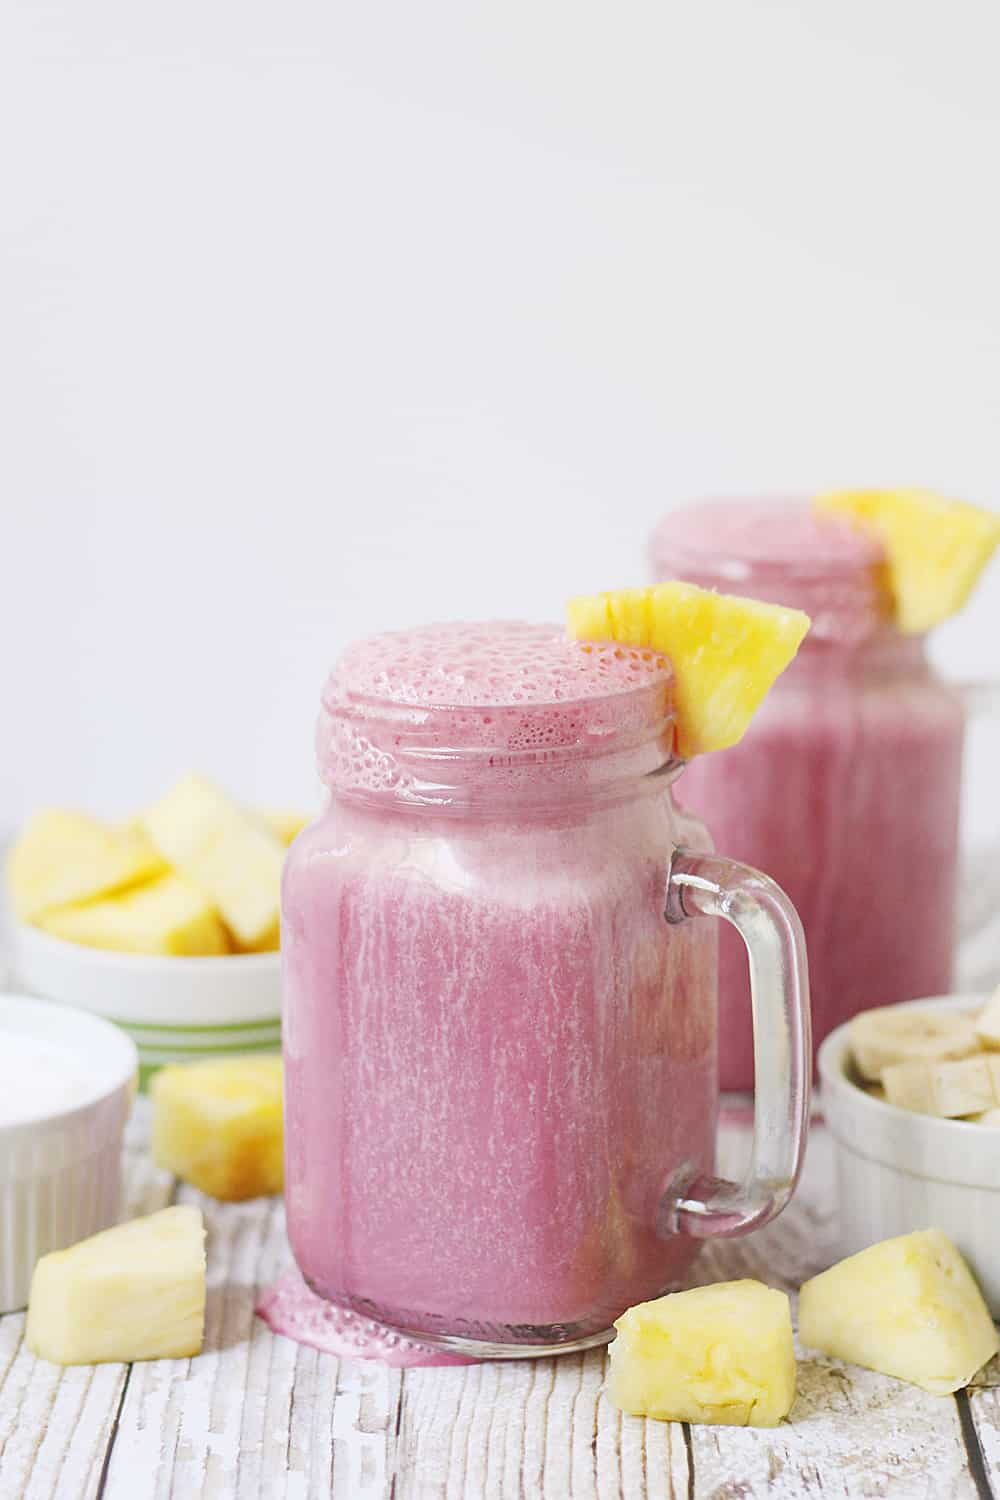 4-Ingredient Pineapple Cranberry Smoothie -- Cranberry lovers will enjoy this 4-ingredient pineapple cranberry smoothie! It features all-natural cranberry juice, frozen pineapple and banana, and Greek yogurt for a tart, good-for-you smoothie! #smoothie #cranberry #whatsyourjuicemadeof @walmart #KnudsenFarmToBottle #pineapple #drink #healthyrecipe #ad